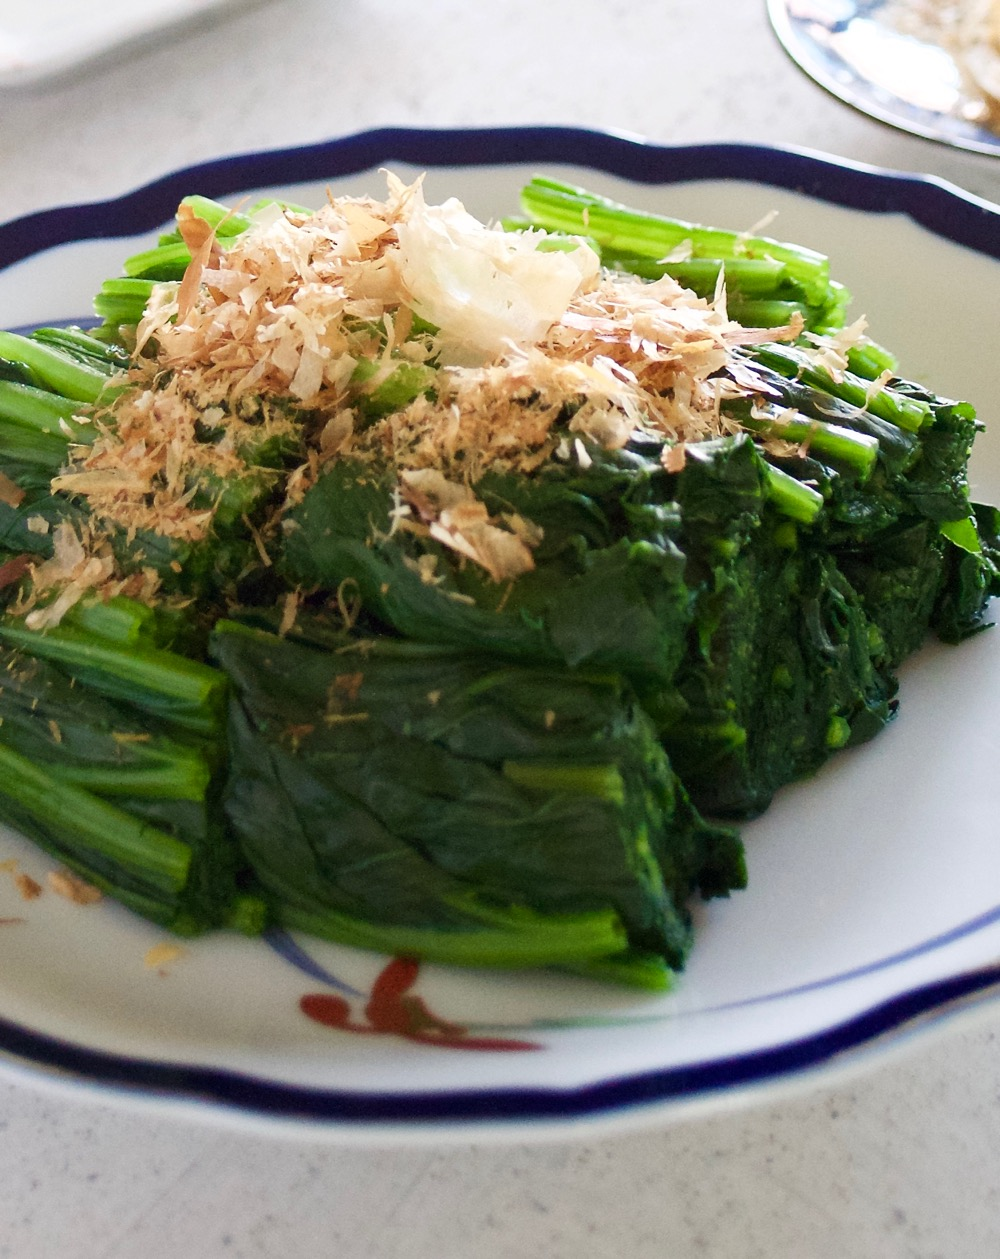 Spinach ohitashi salad is a very simple dish as a side or substitute for salad. Simply boil and serve with bonito flakes topping, or sesame seeds if vegetarian.